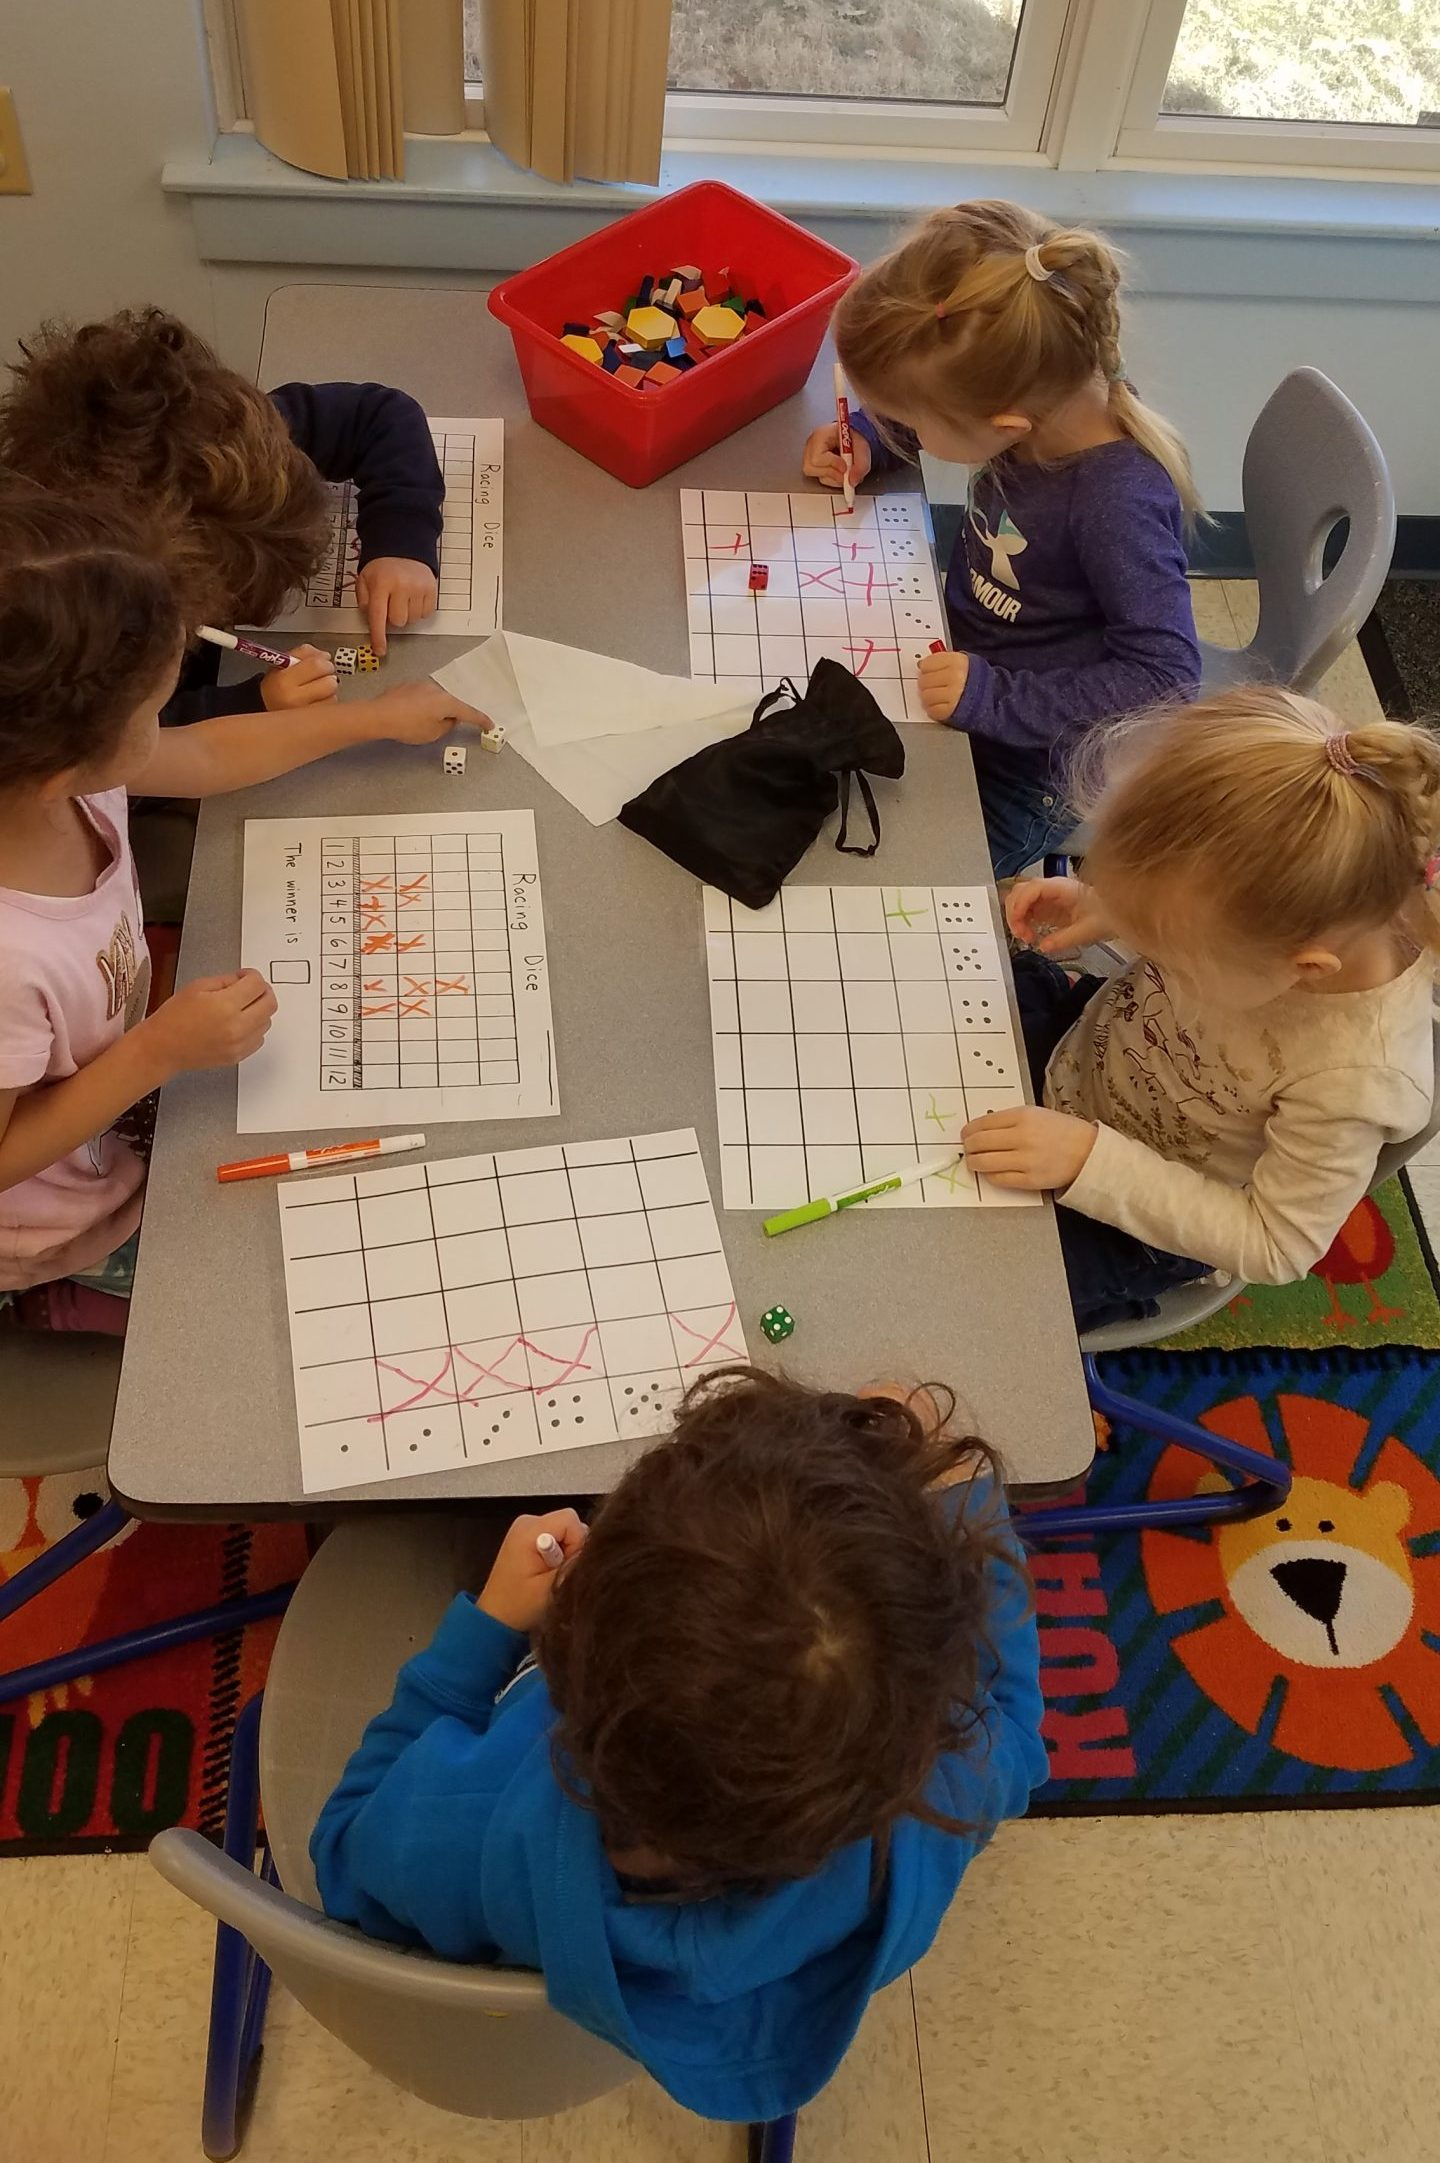 Actively engaged in math